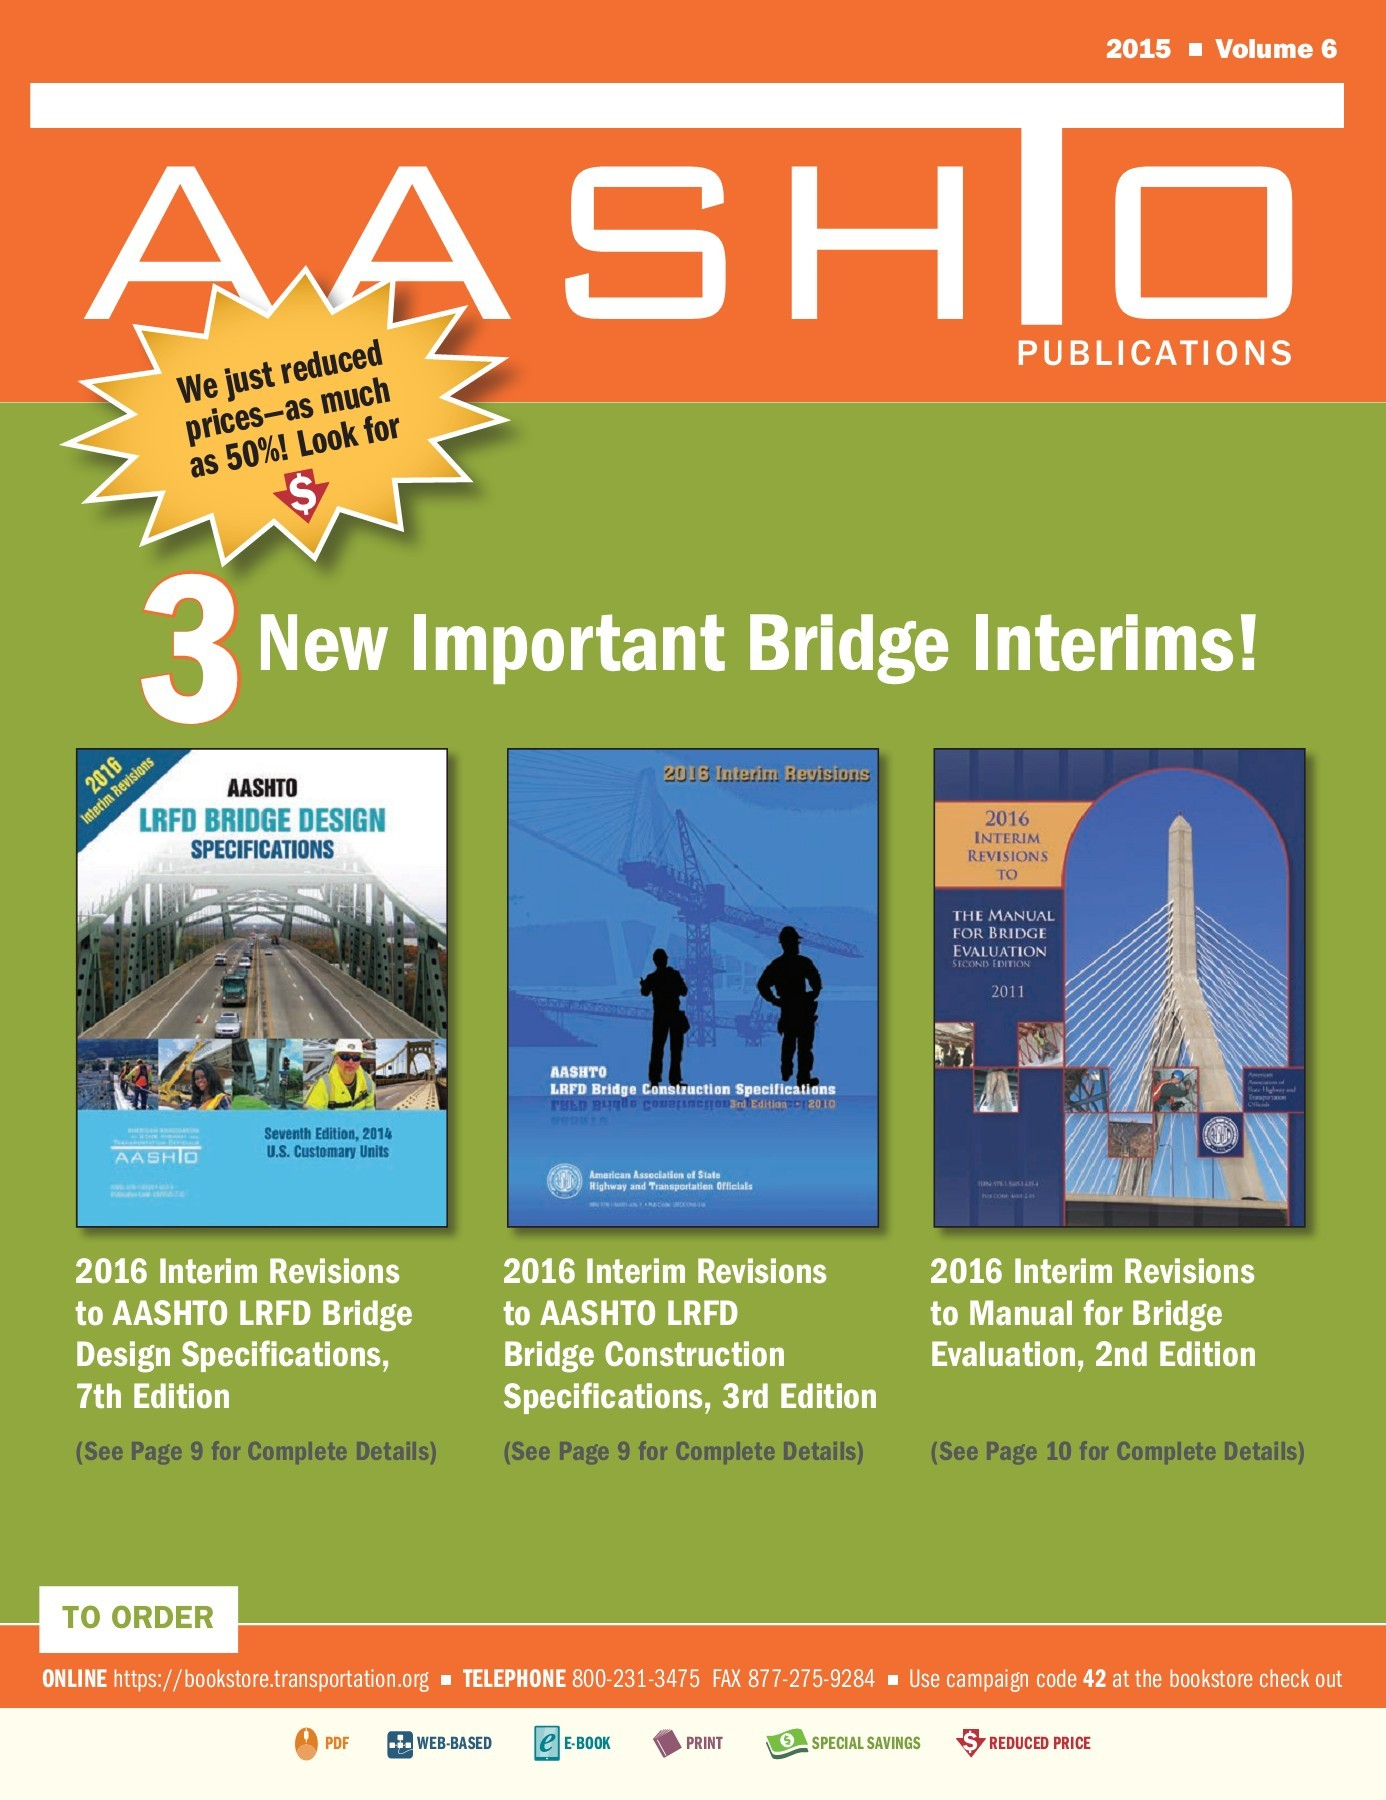 Aashto Lrfd Bridge Design Specifications 6th Edition 2016